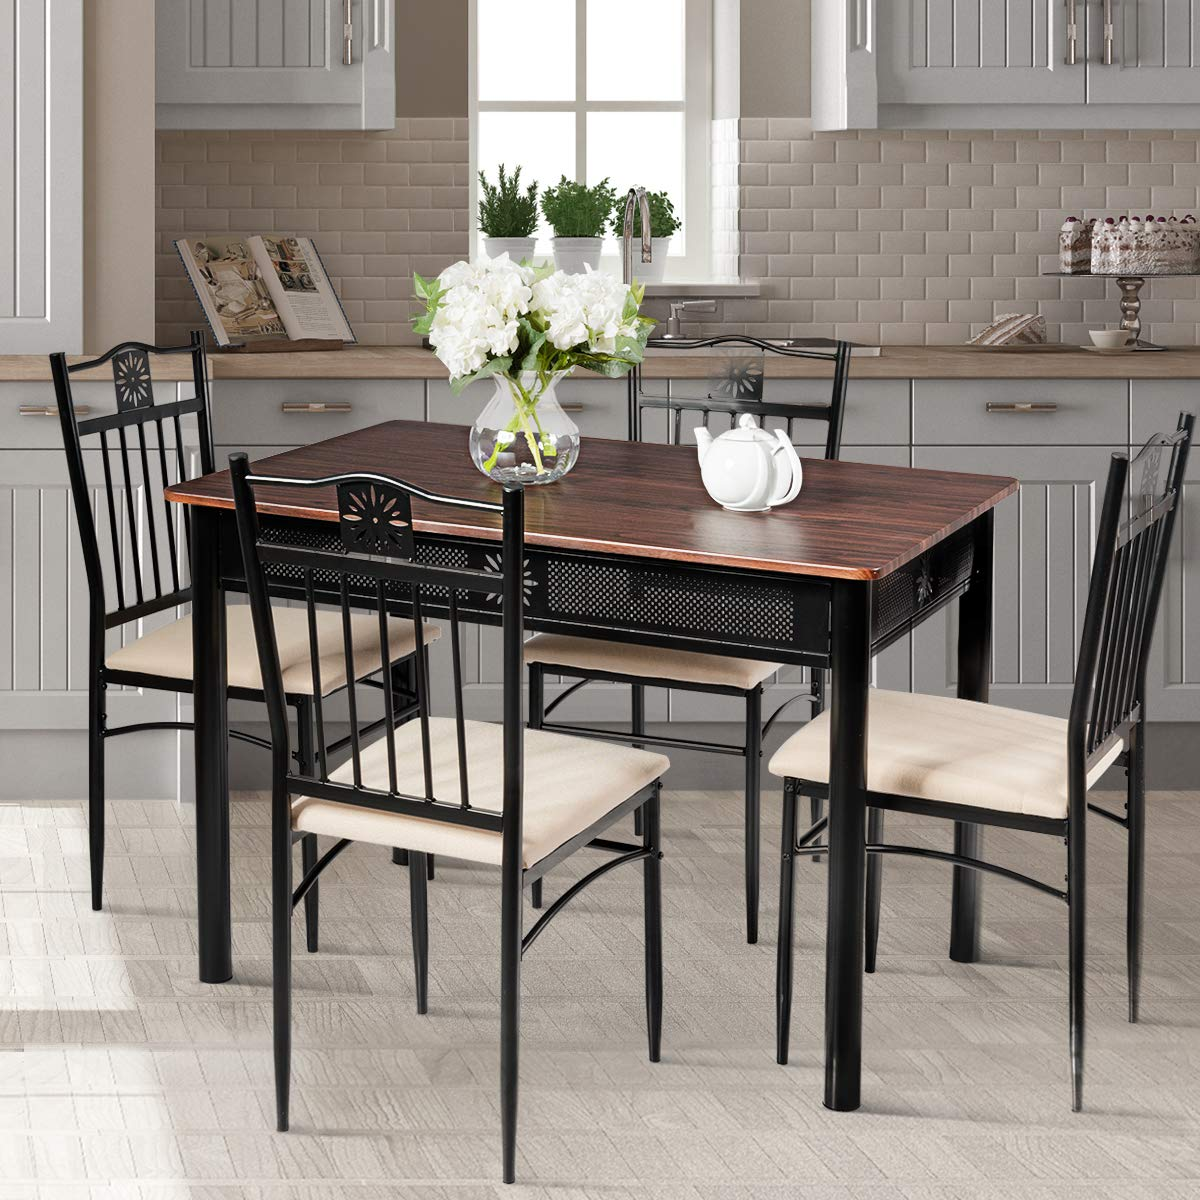 Tangkula 5 Pieces Dining Table and Chairs Set Vintage Retro Wood Top Metal Frame Padded Seat Dining Table Set Home Kitchen Dining Room Furniture Brown